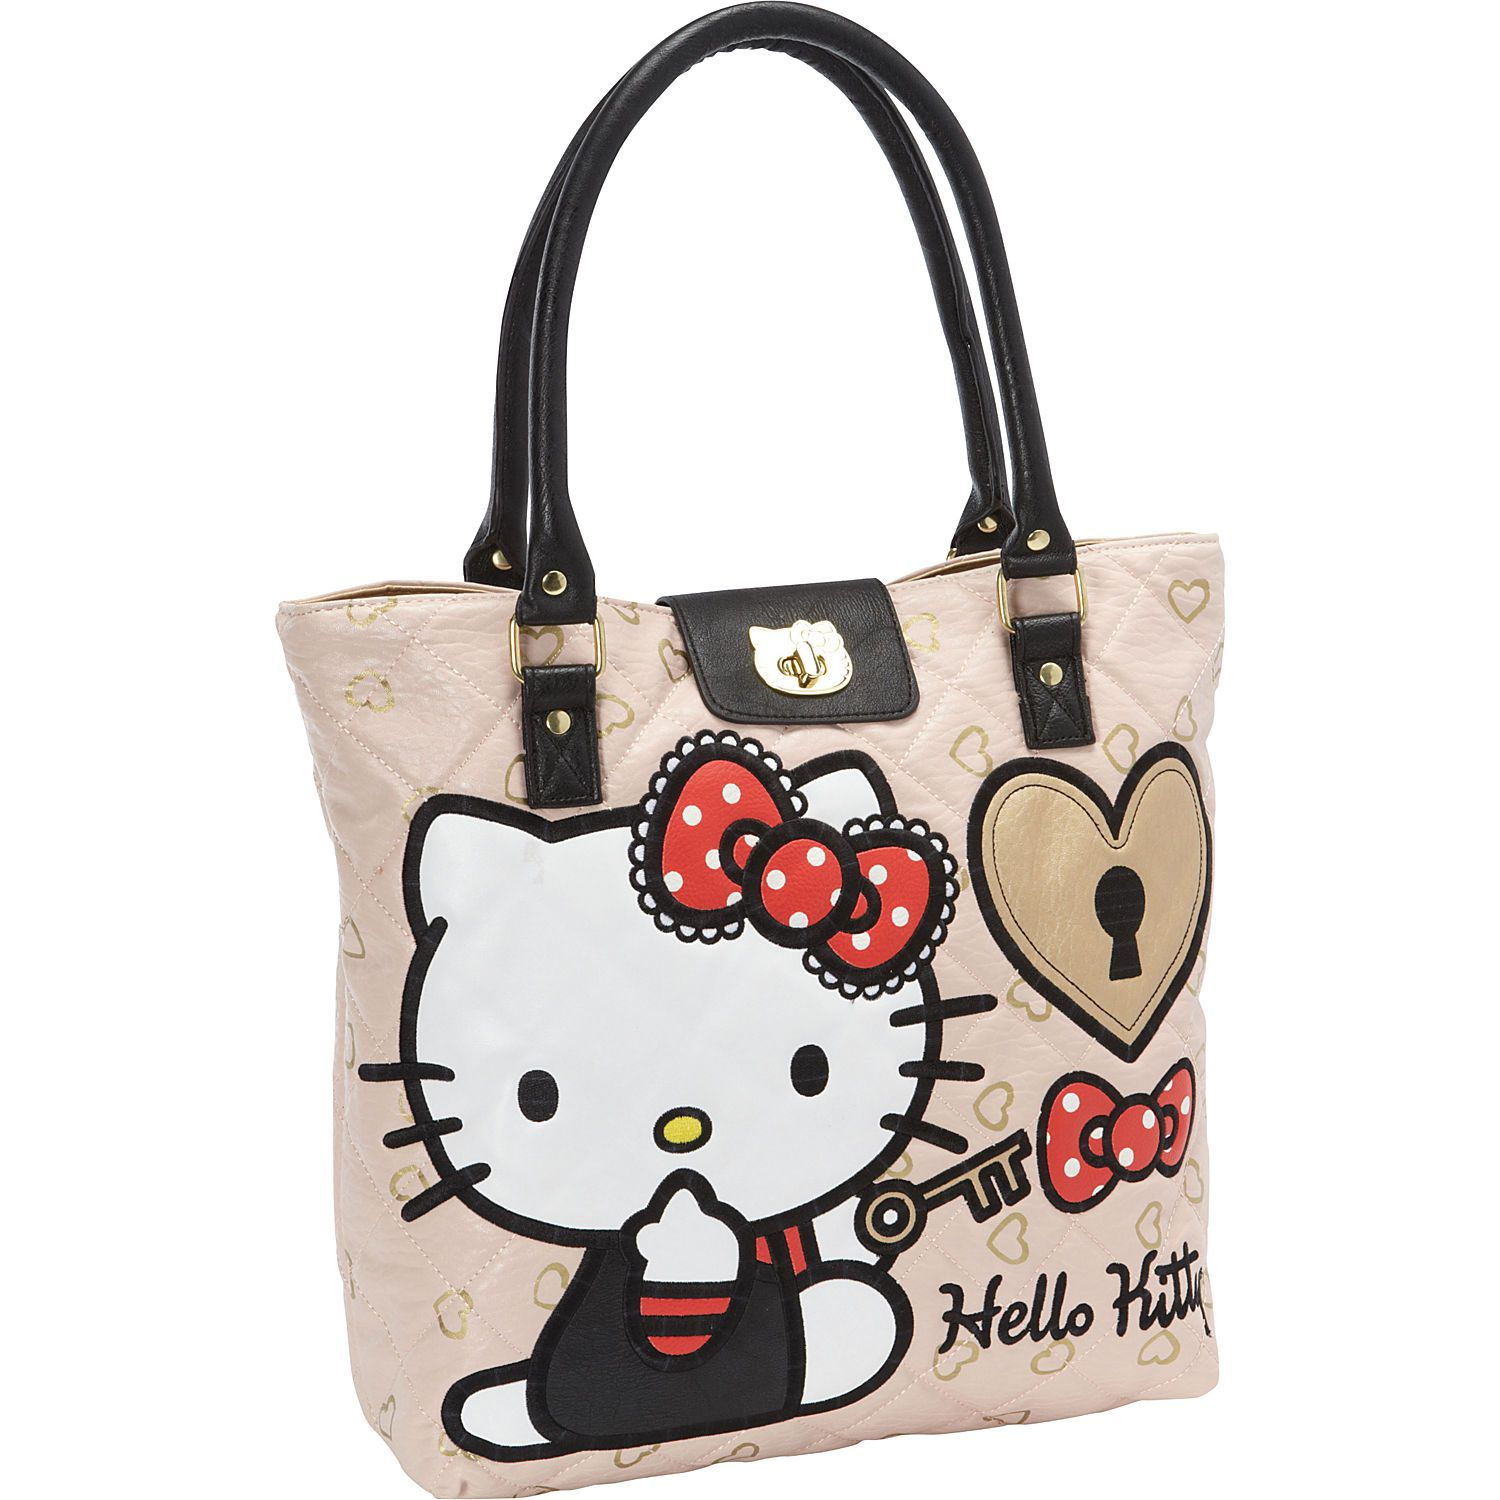 Loungefly Hello Kitty Lock and Key Tote - eBags.com